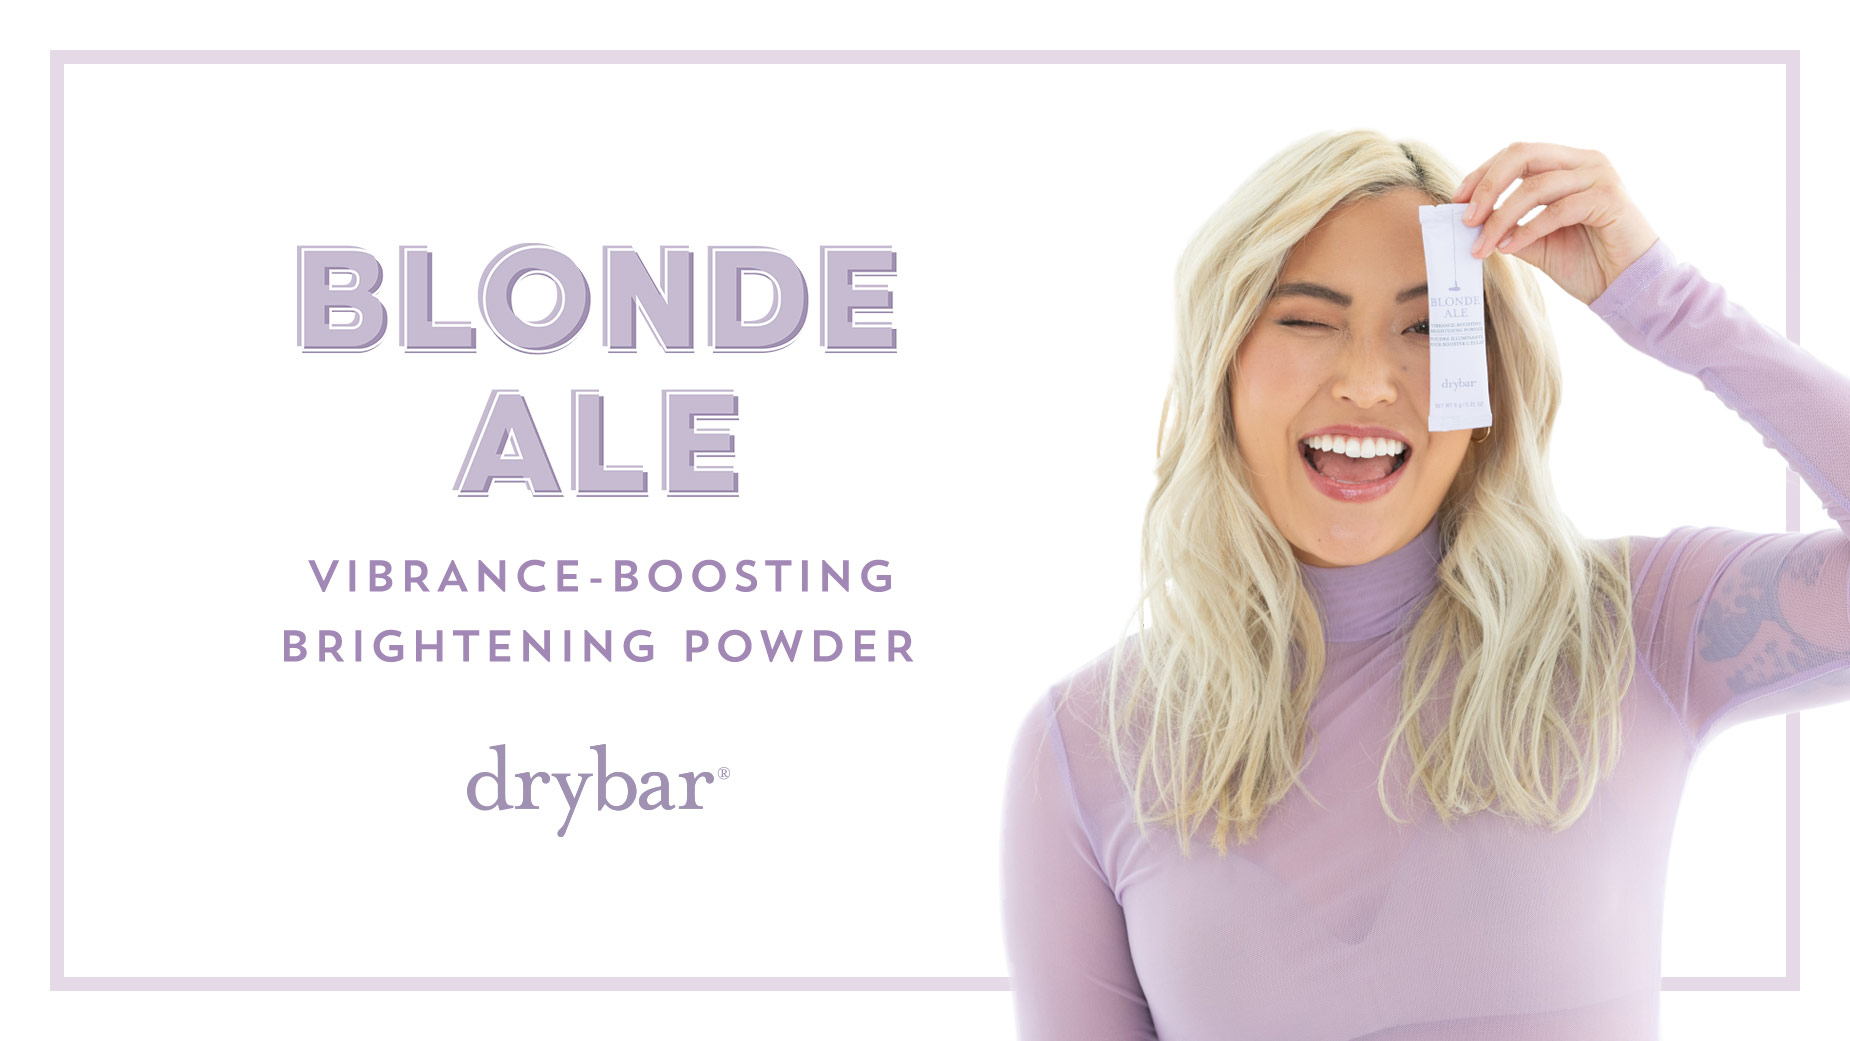 Blonde Ale Vibrance-Boosting Brightening Powder Video